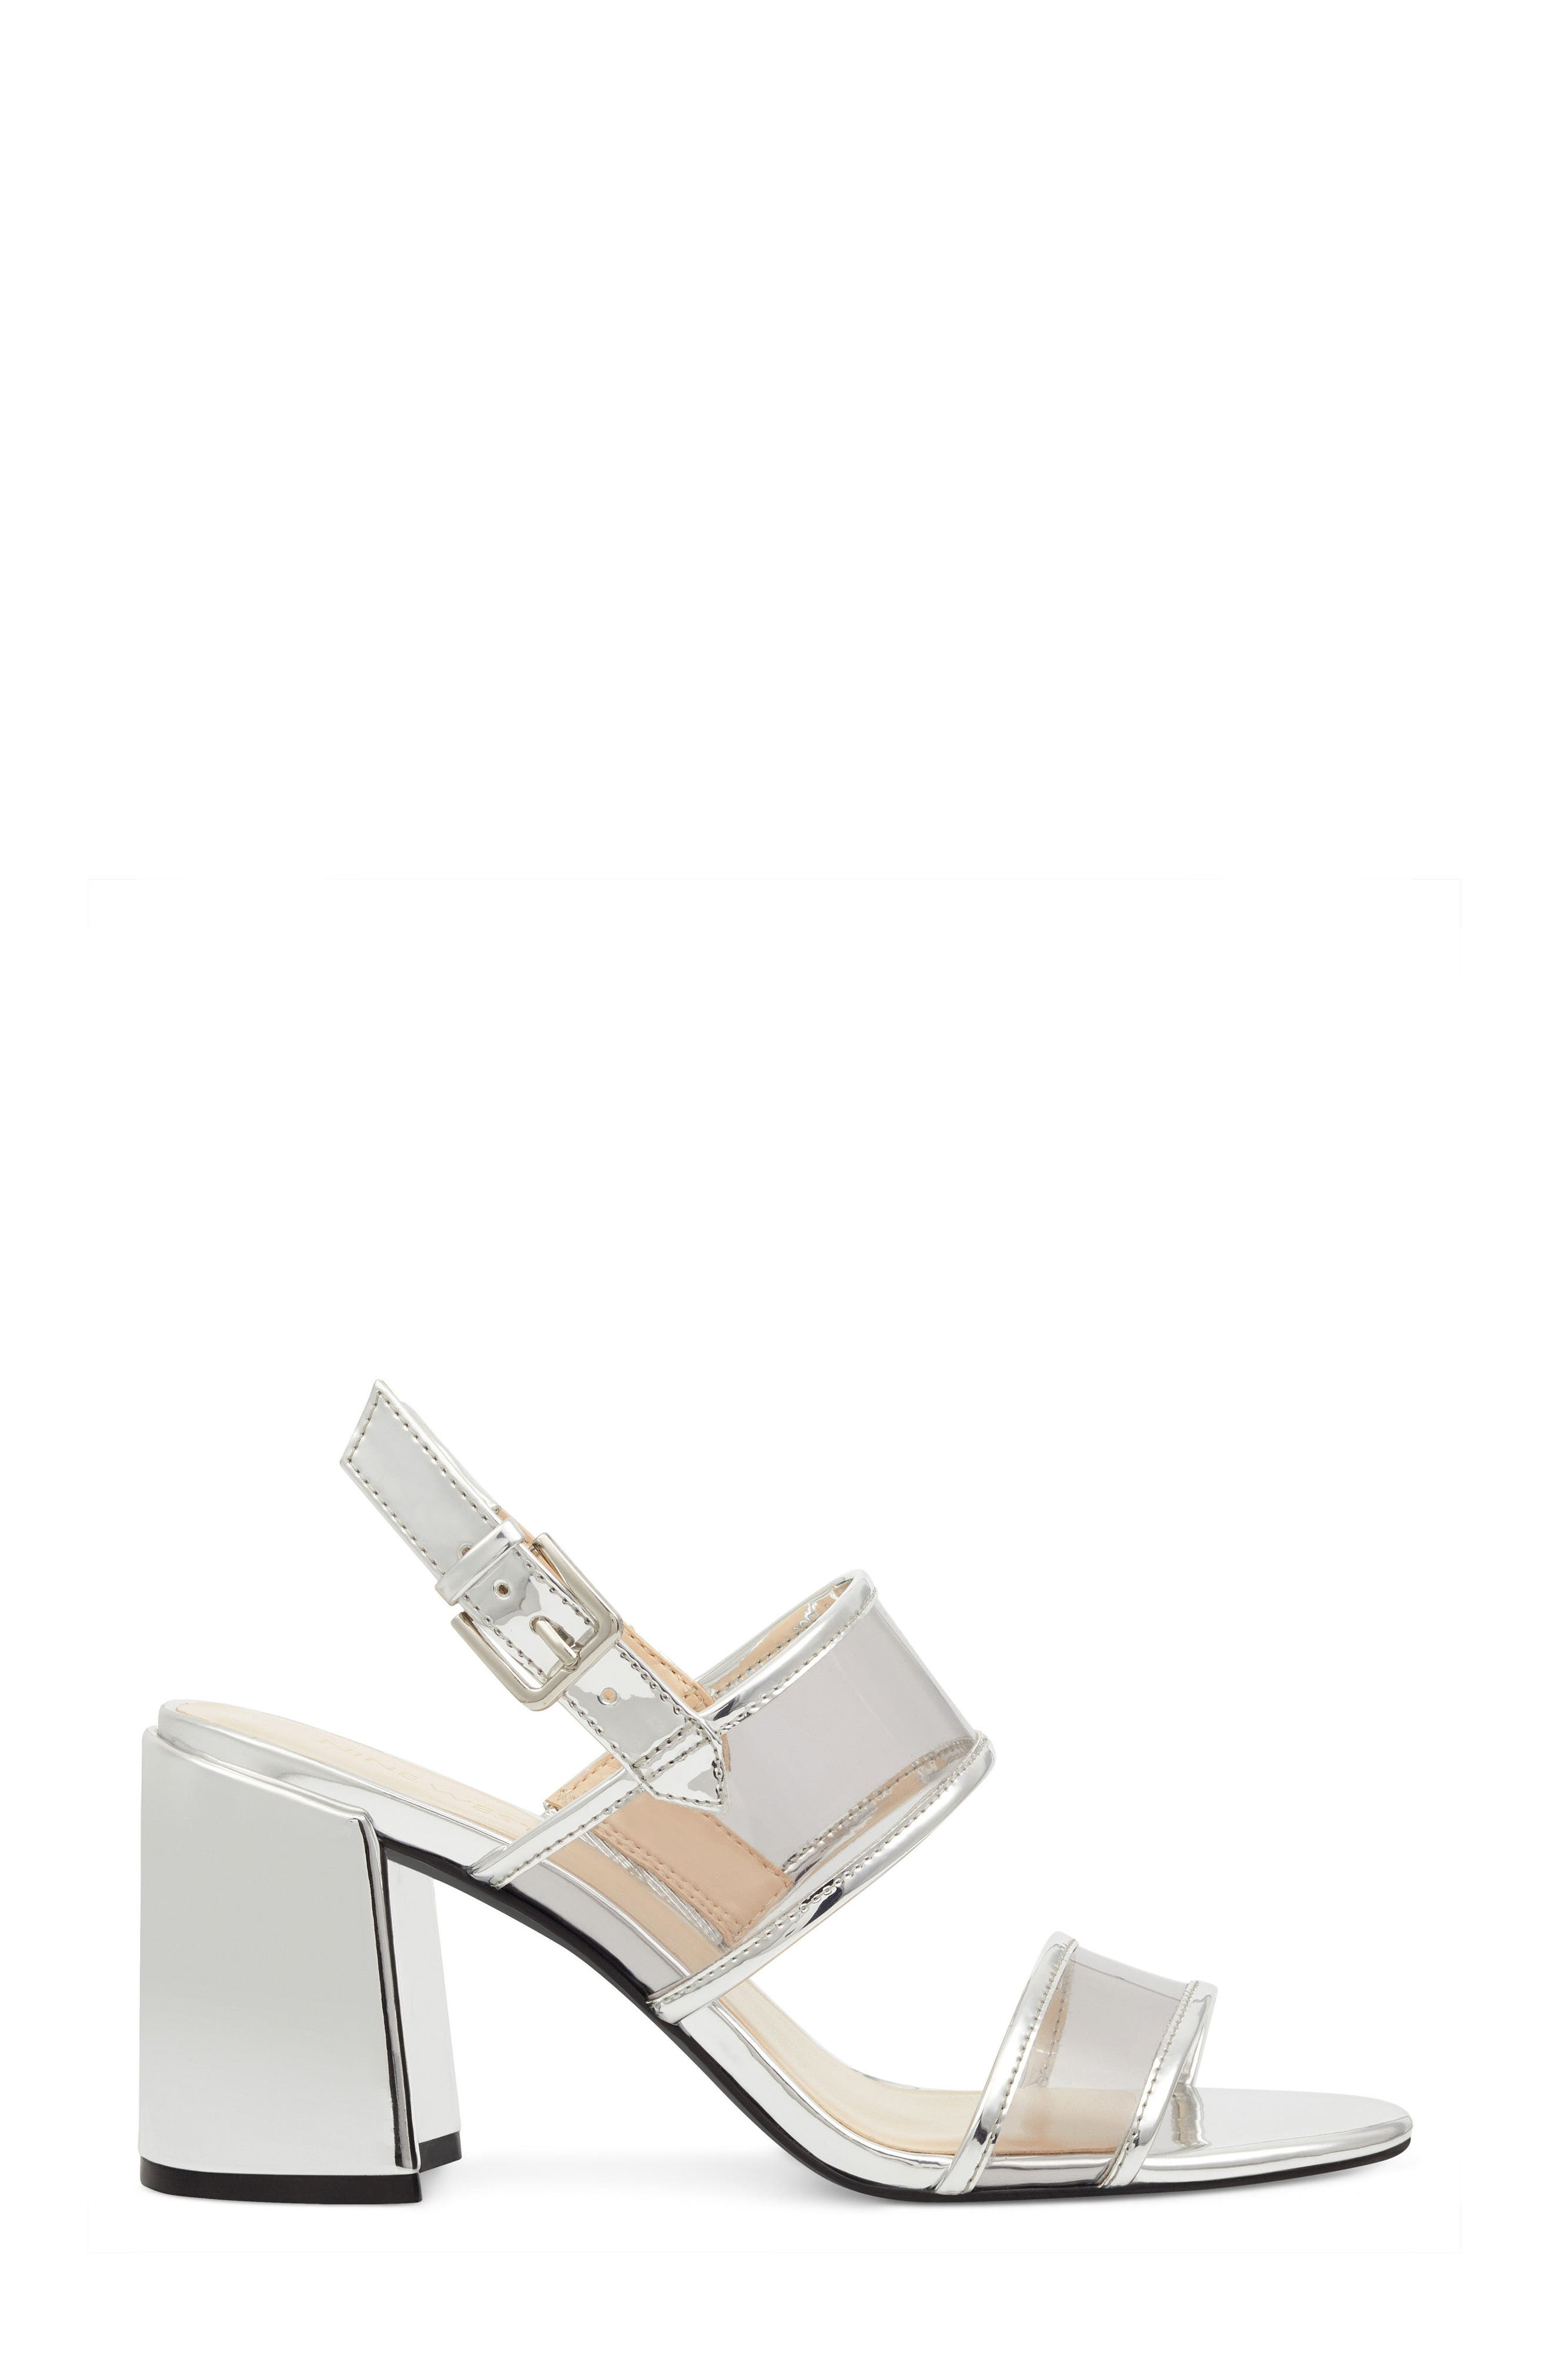 Gourdes Block Heel Sandal,                             Alternate thumbnail 3, color,                             Clear Grey Multi Faux Leather